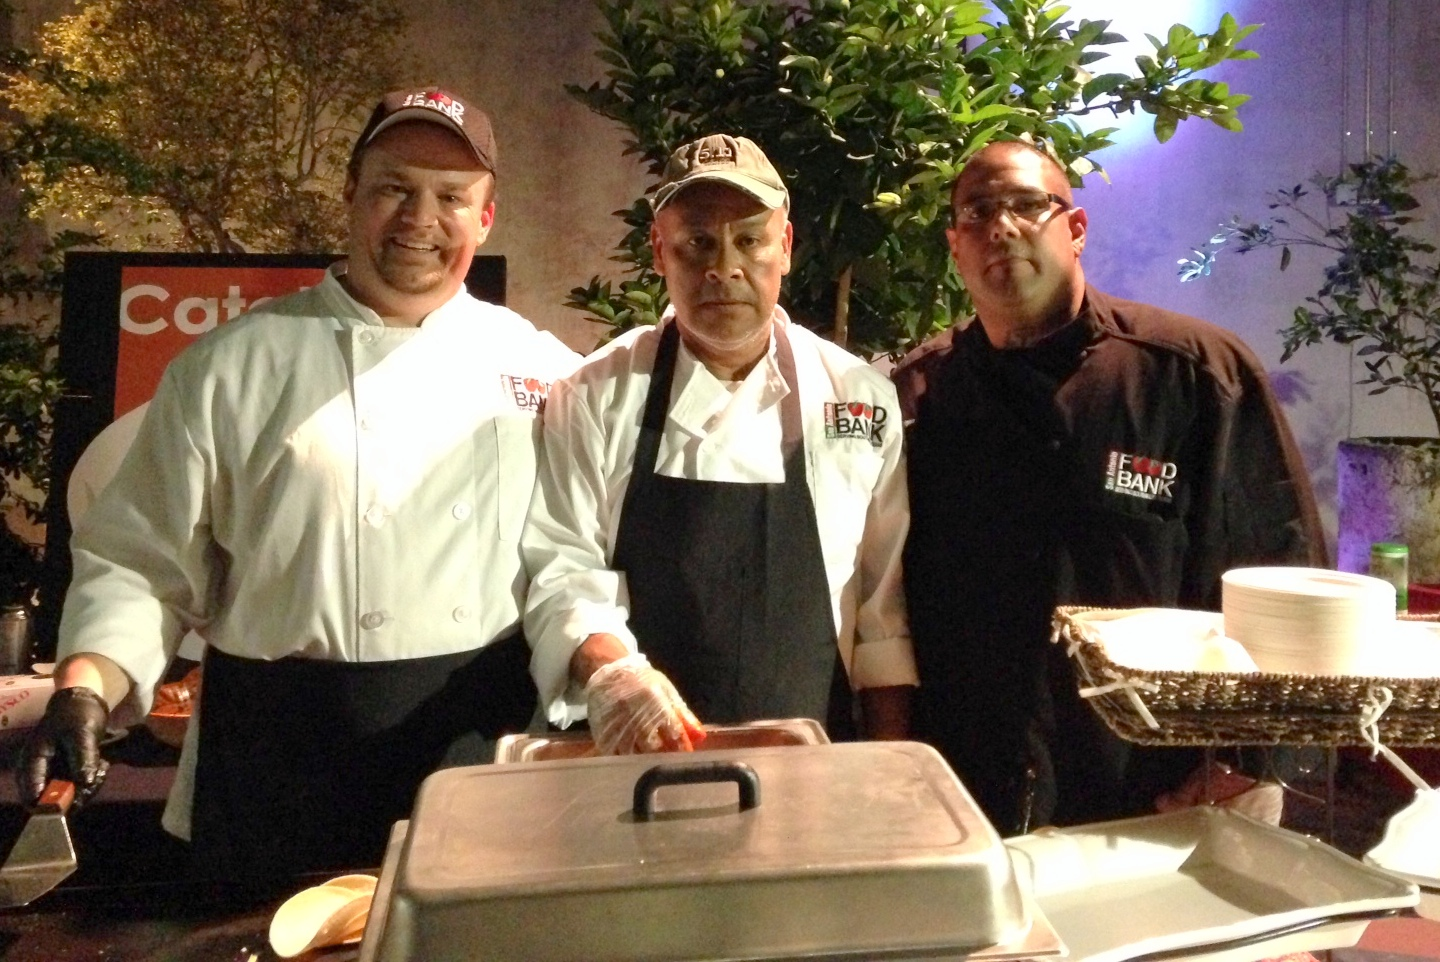 From left: Students Robert Gratteau and Rudy Fernandez with Staff Chef David Rodriguez, proudly representing the San Antonio Food Bank, Community Kitchen, and Catalyst Catering programs.